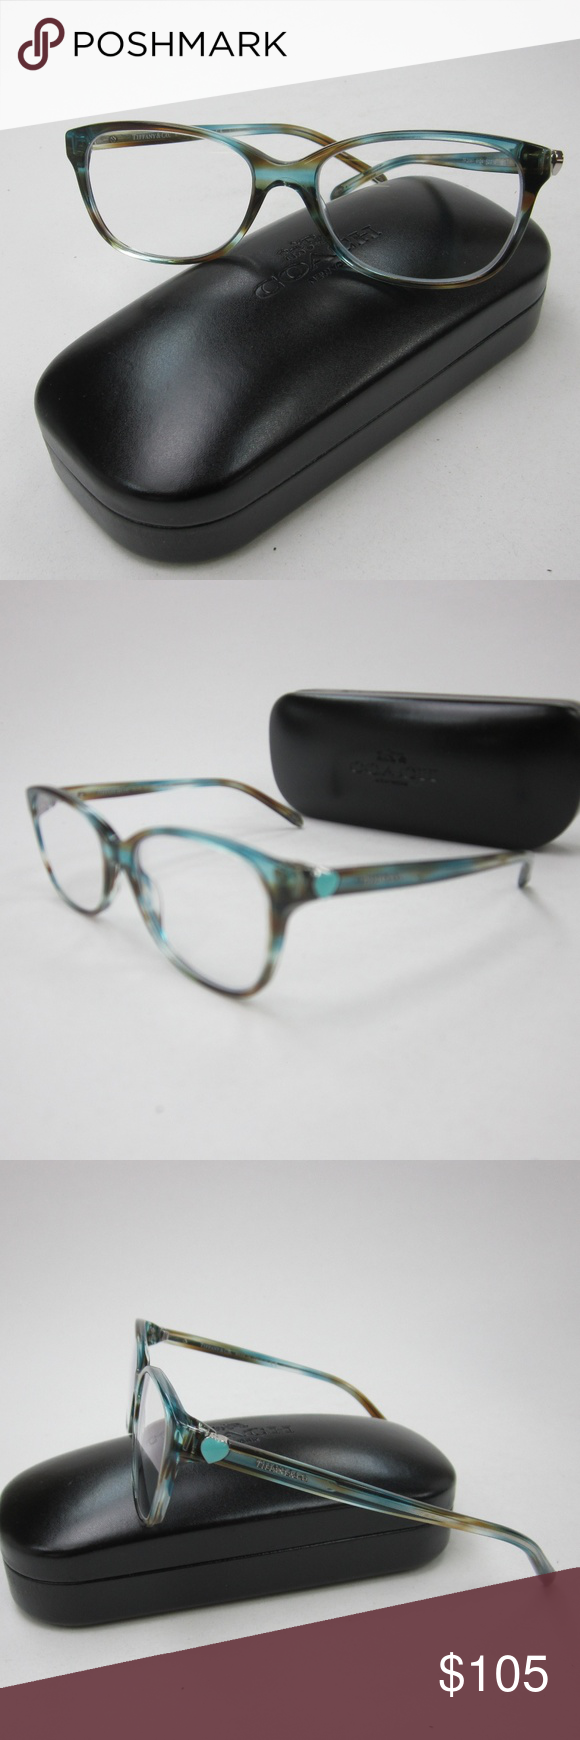 75a55cc679a Tiffany   Co. TF 2097 8124 Eyeglasses Italy OLN224